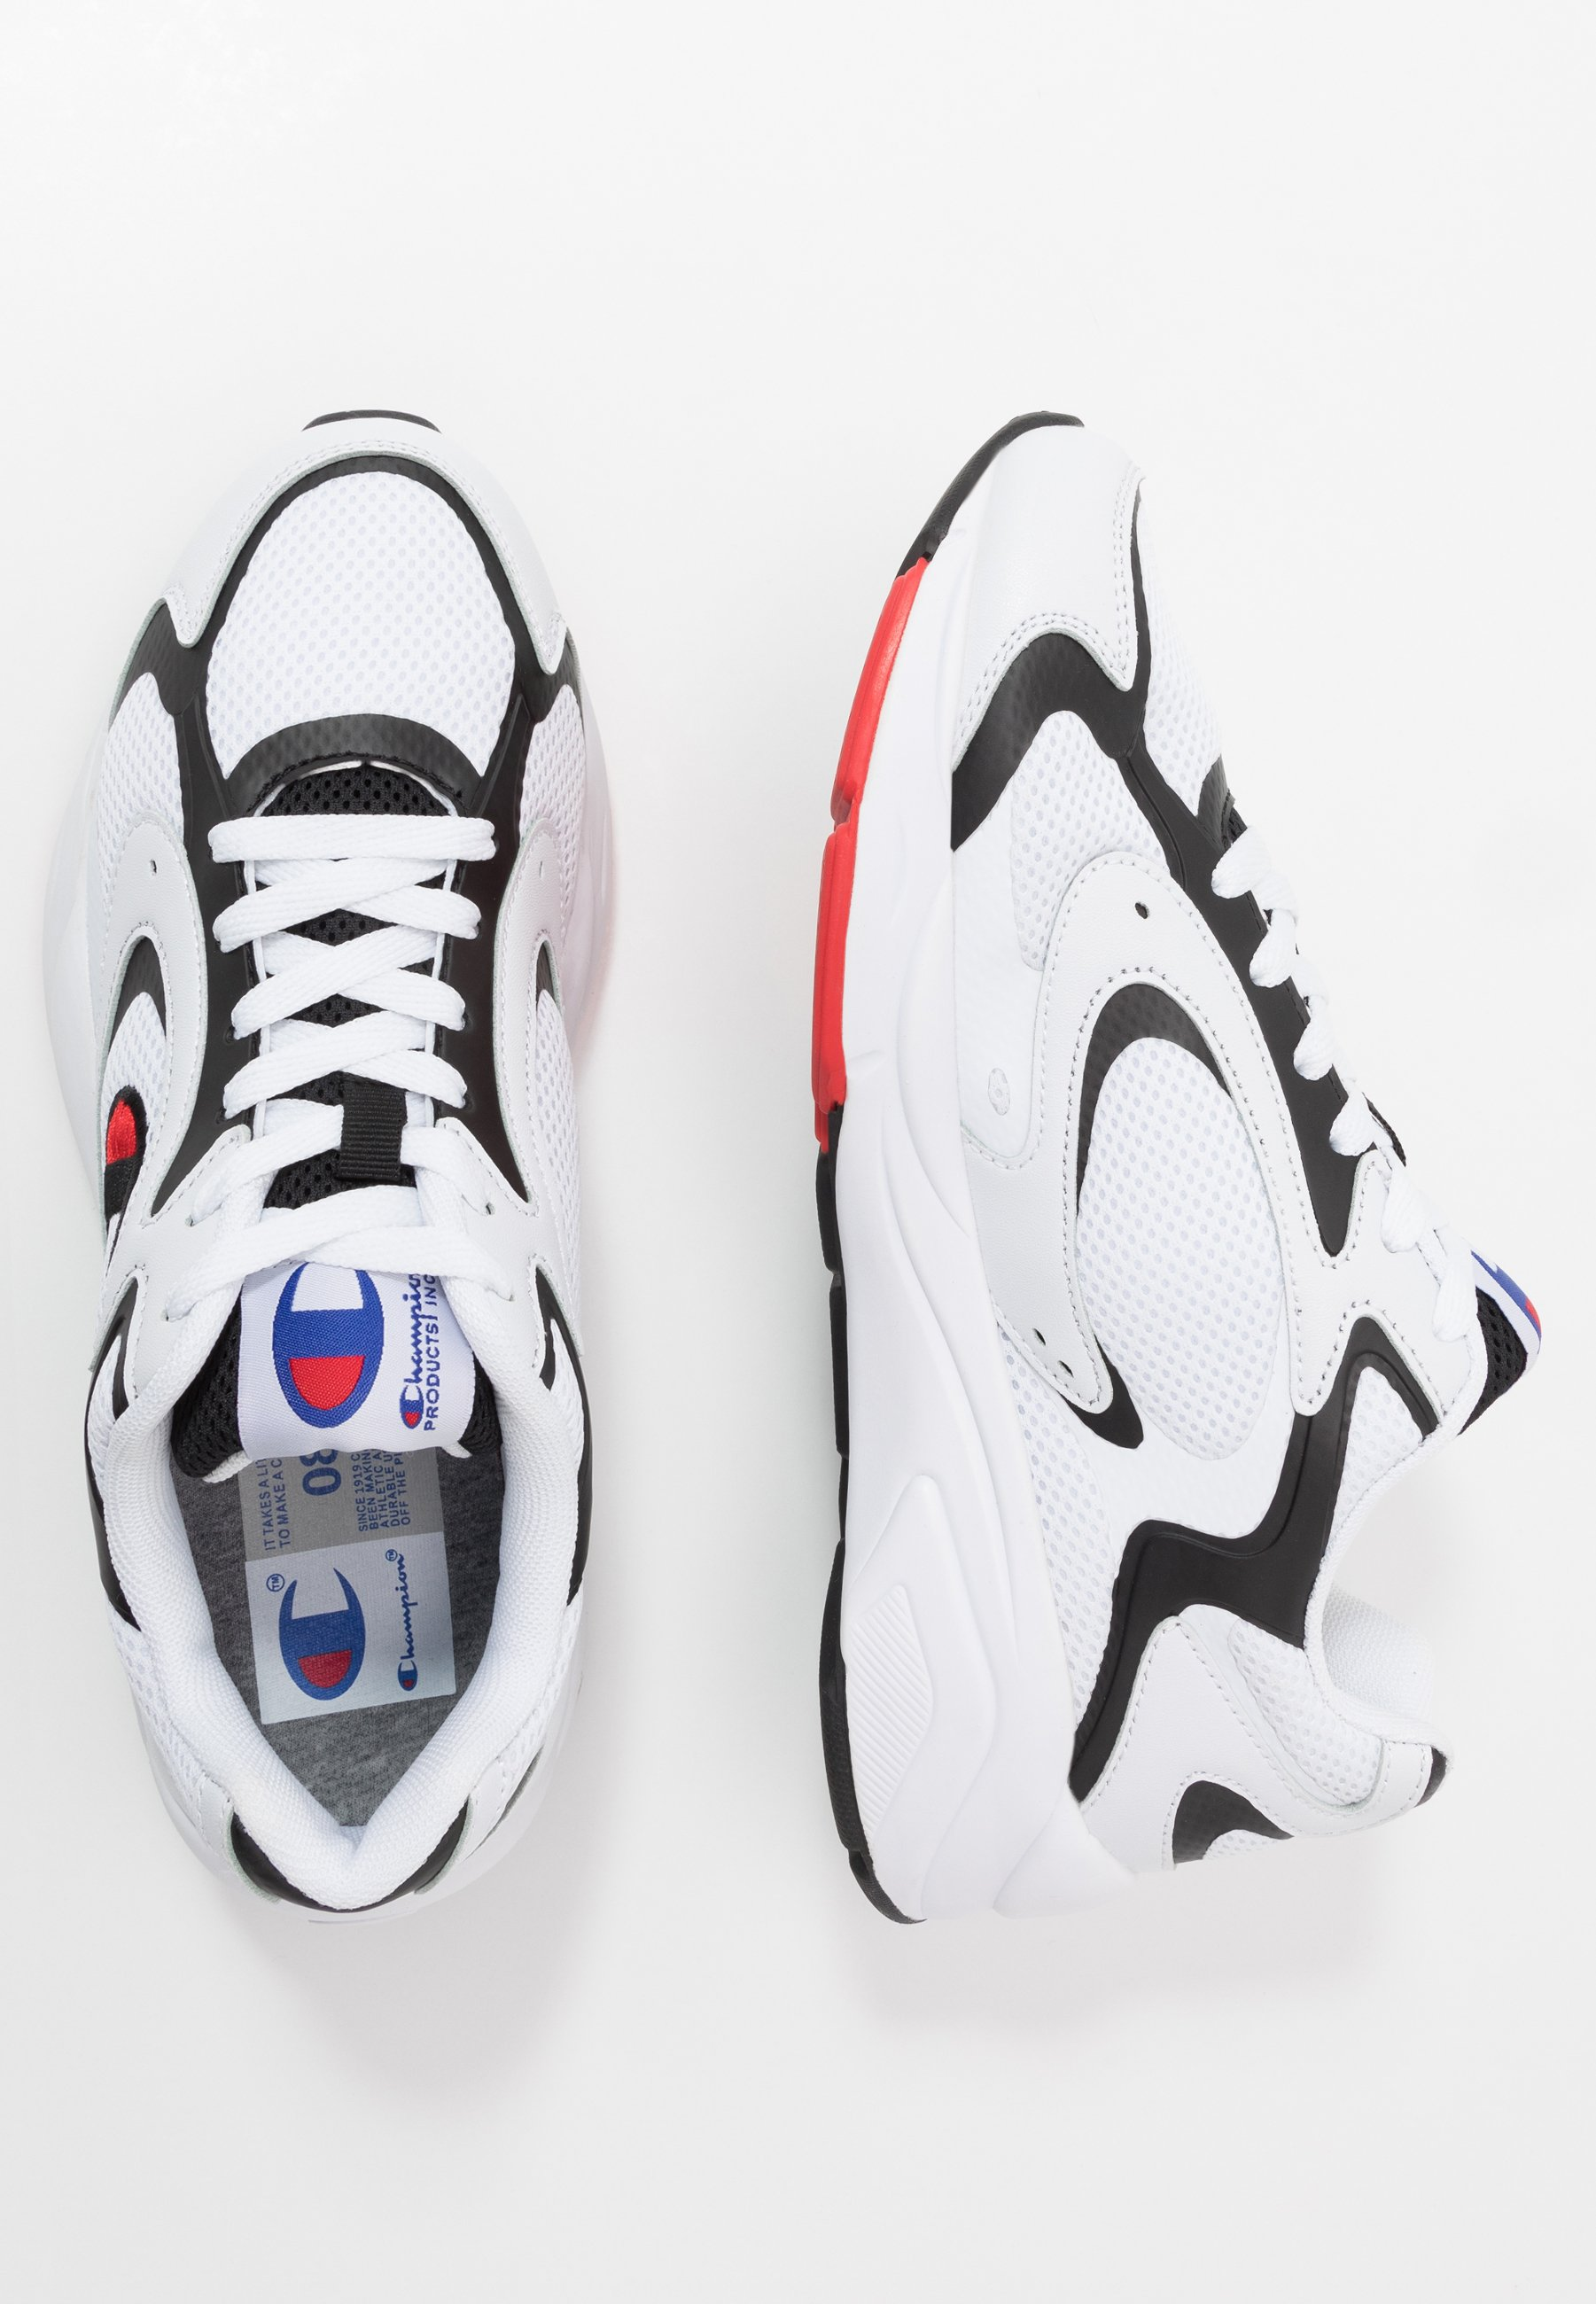 LOW CUT SHOE LEXINGTON 200 Gym & träningskor whiteblackred